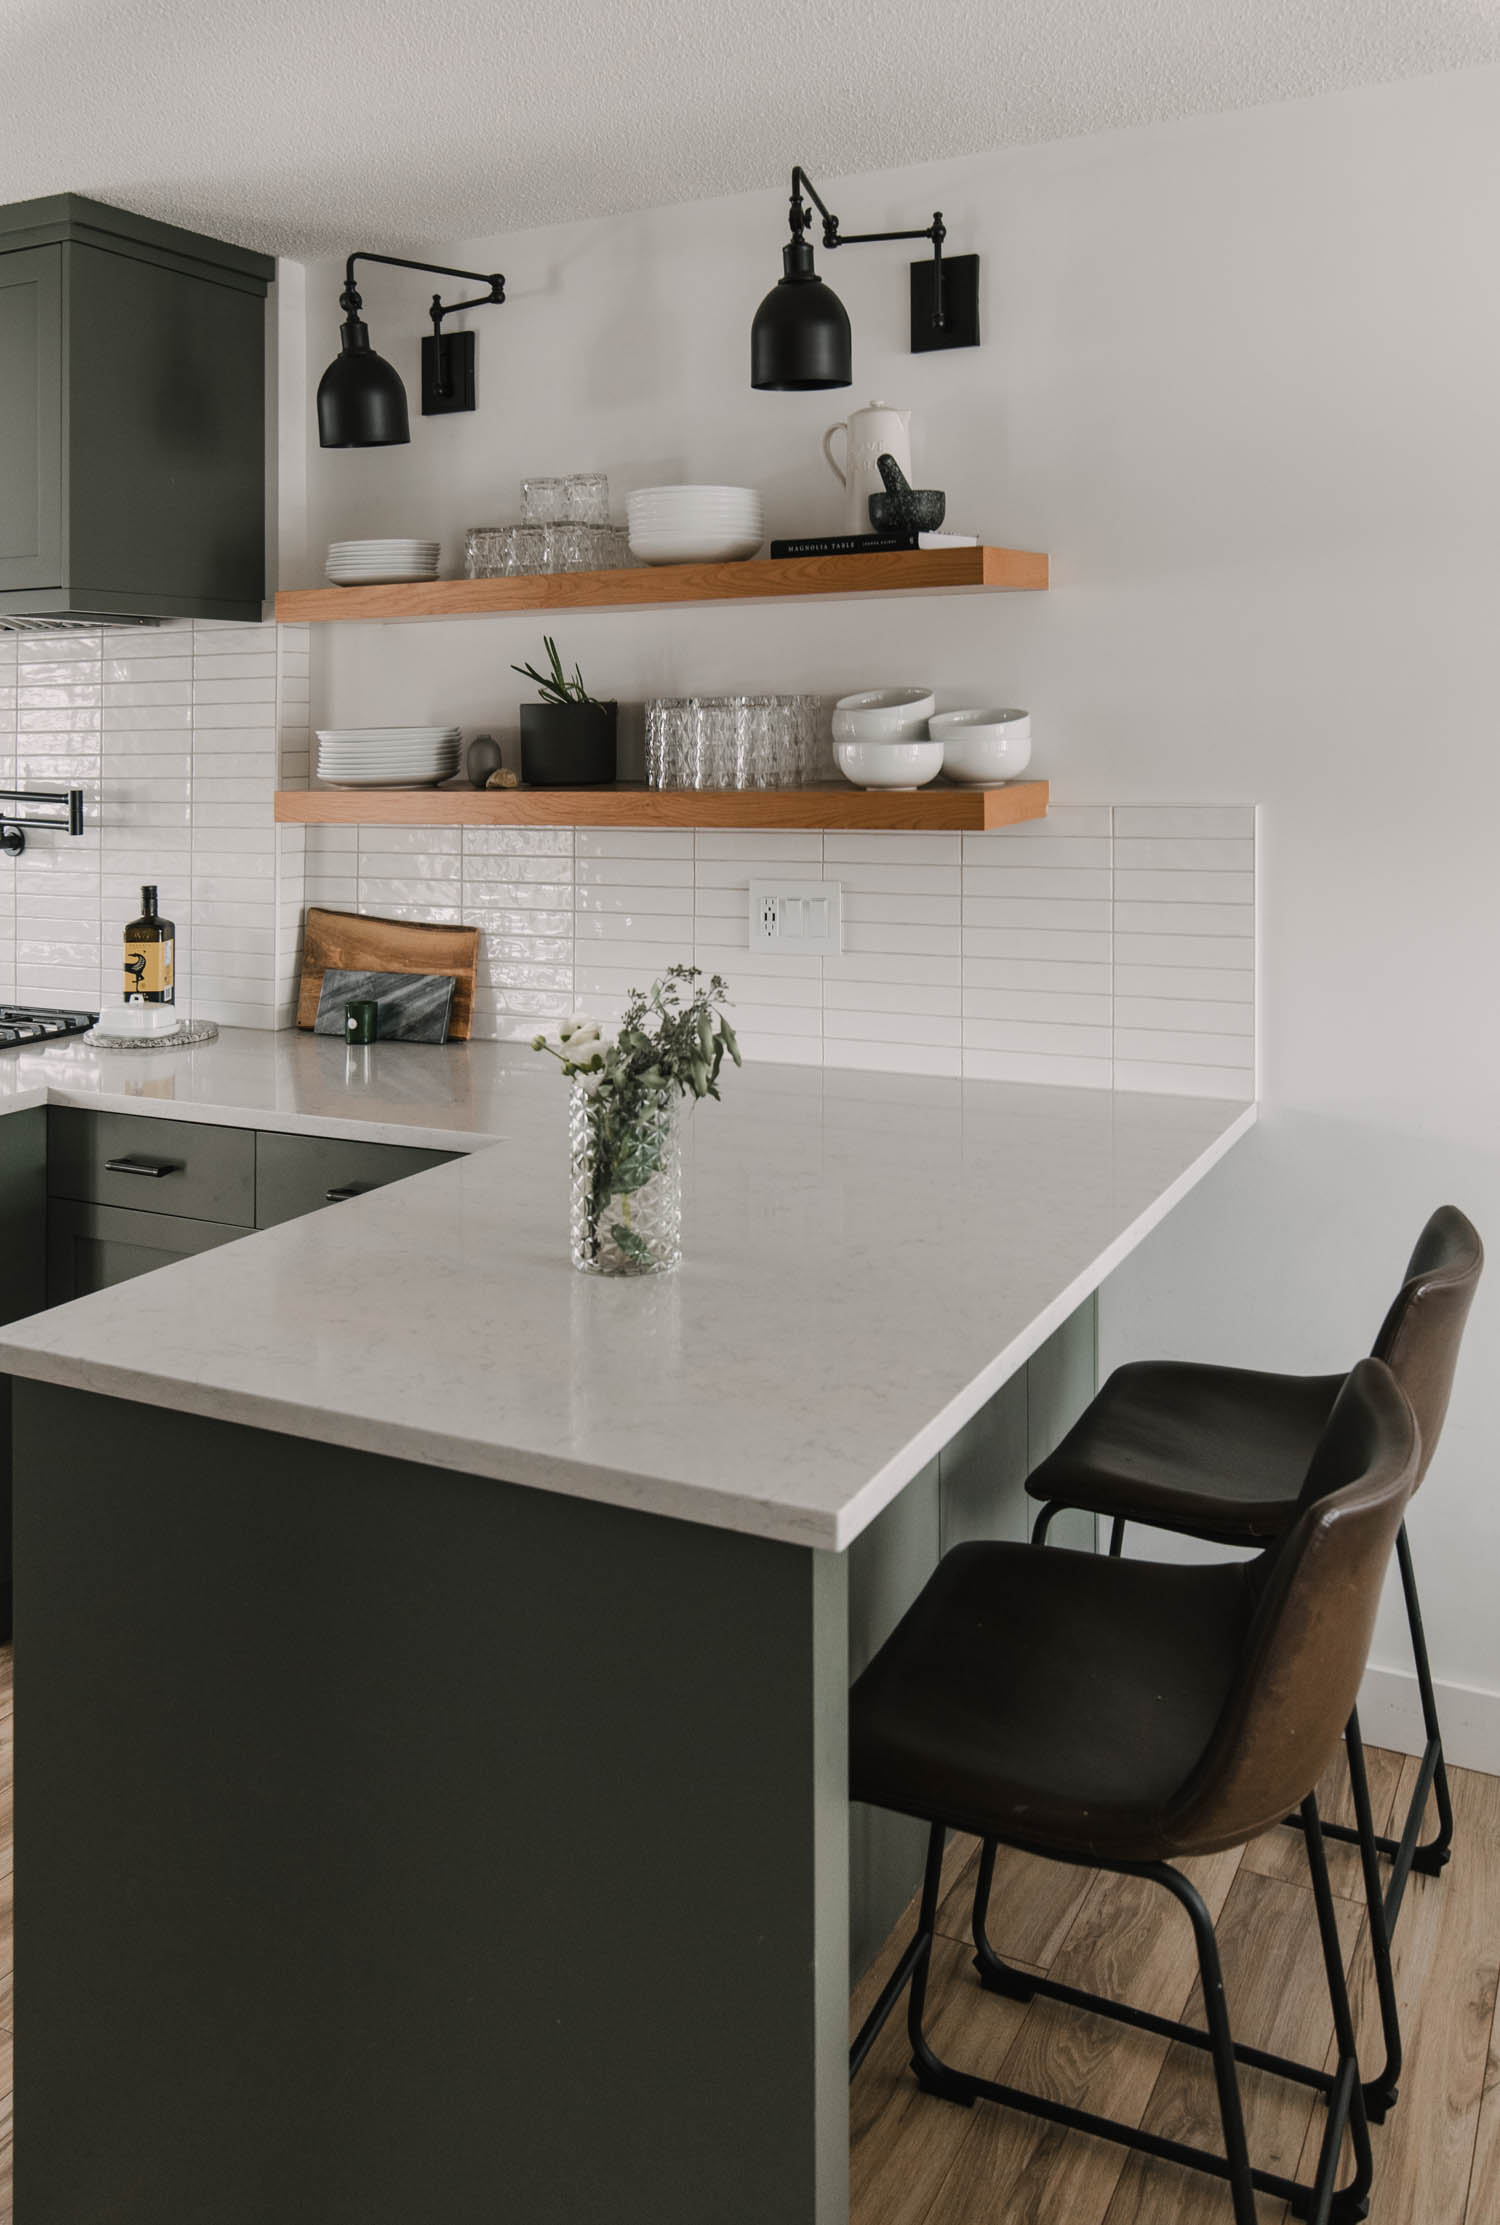 Modern kitchen remodel with long open shelves